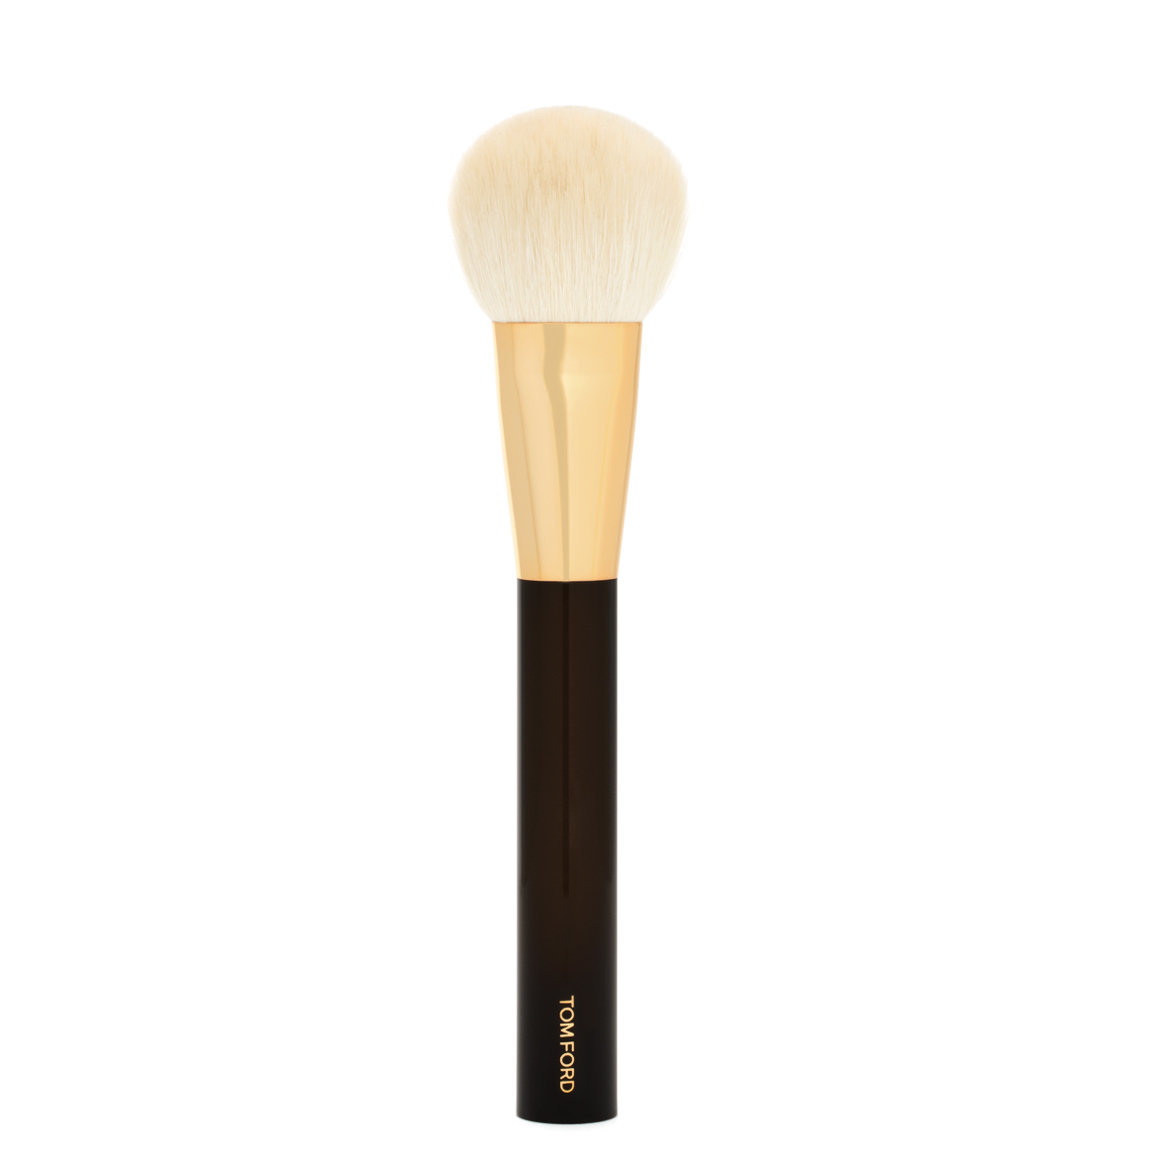 TOM FORD Cheek Brush 06 product smear.